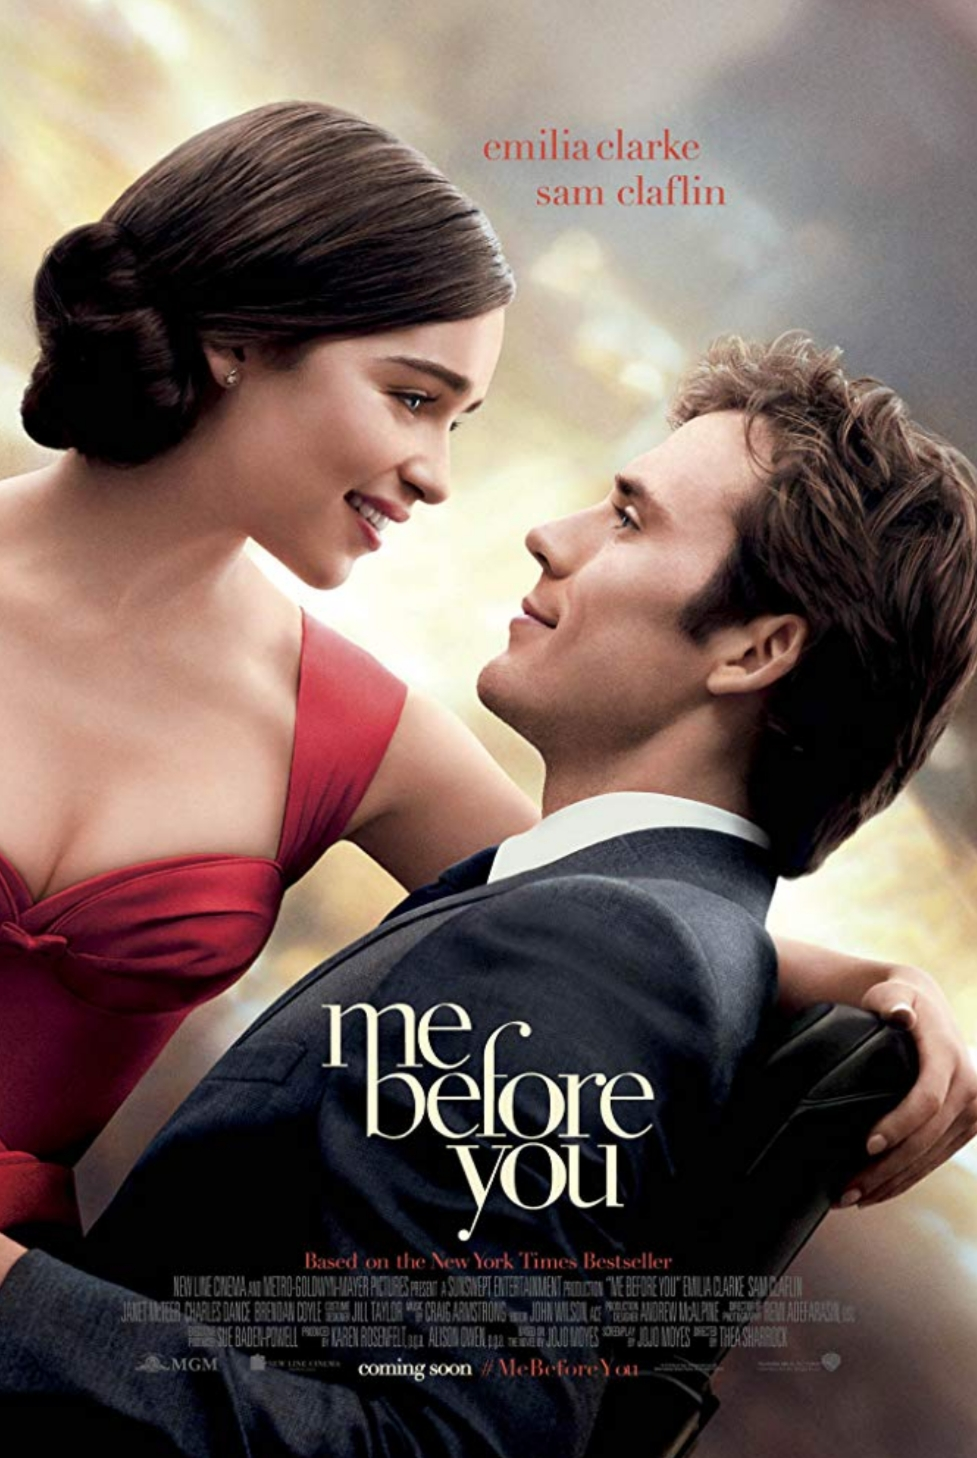 top emilia clarke, sam claflin movies. Top romantic movies to watch. Best romance movies of all time.